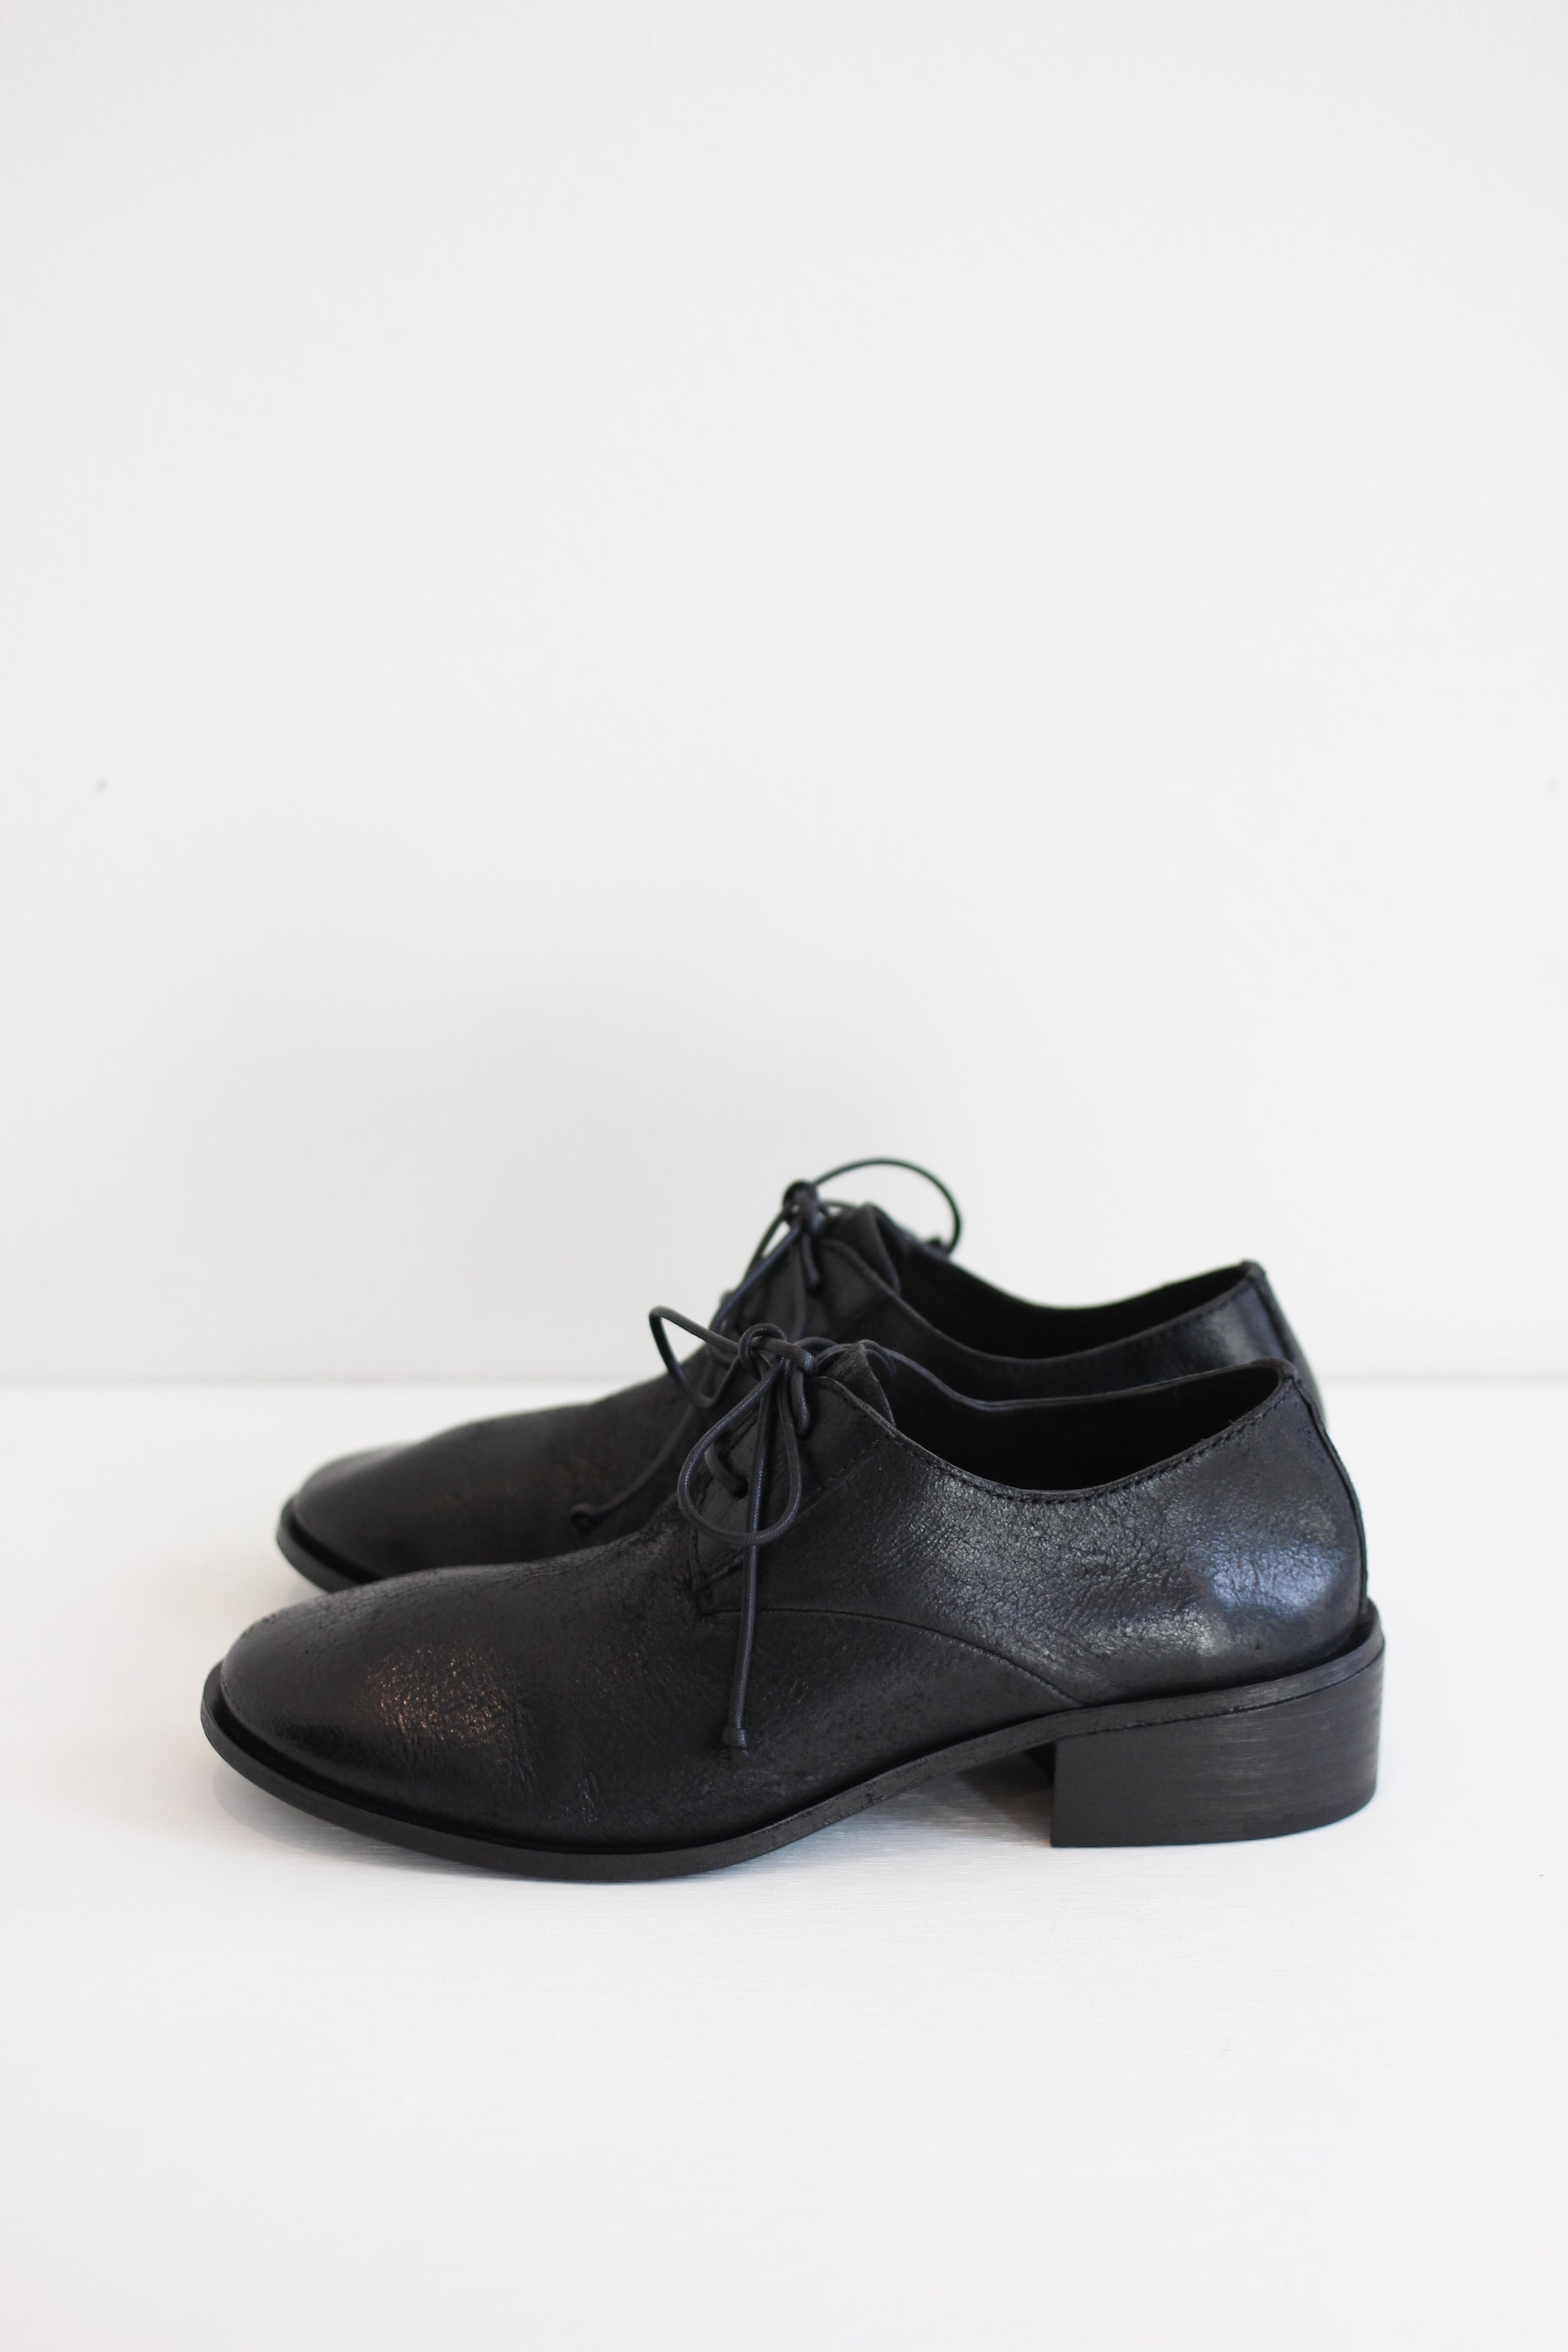 Marsell Buba Oxford - Habits Jackson Hole